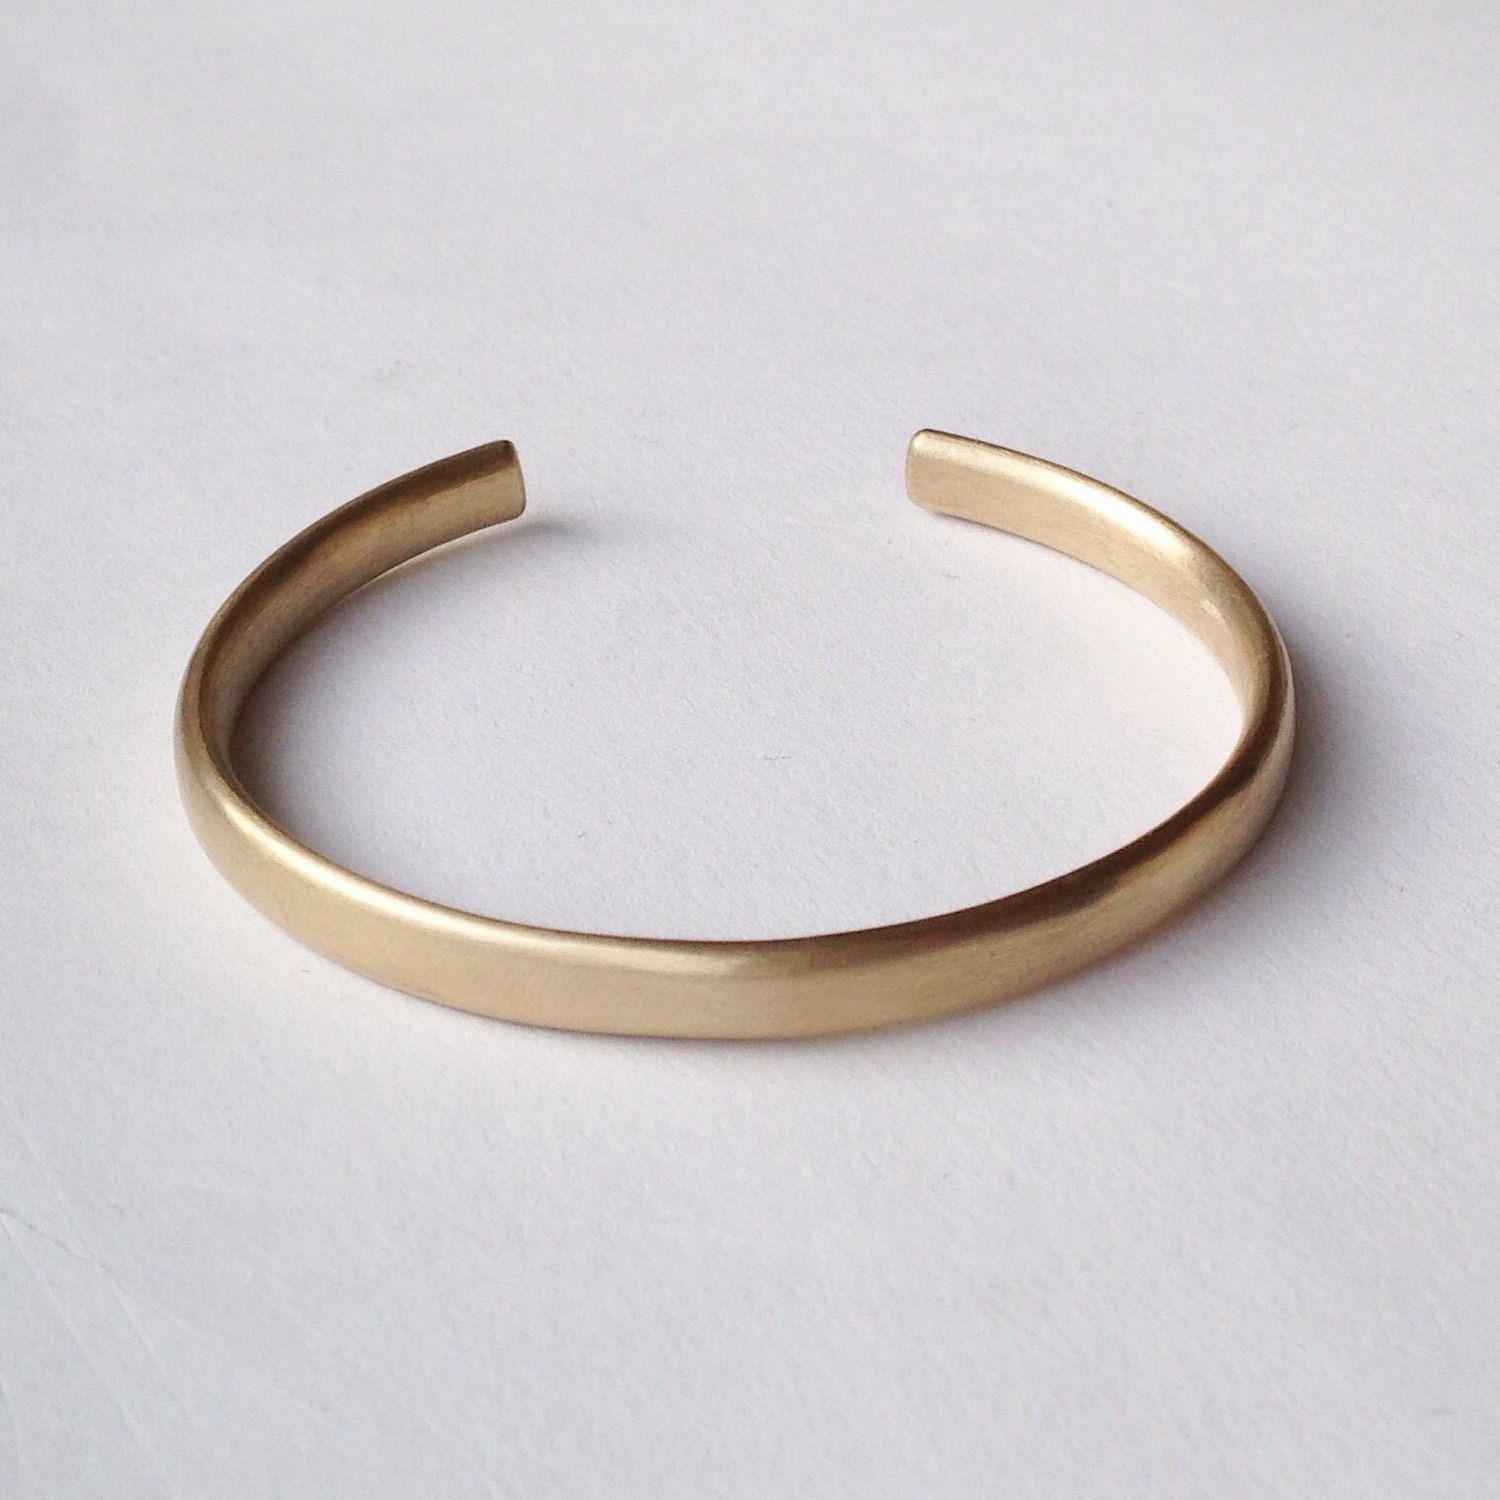 open in gioielli dot minimalist online with bead silver gold bracelet cuff bangle maschio milano simple armband sphere shop thin bangles